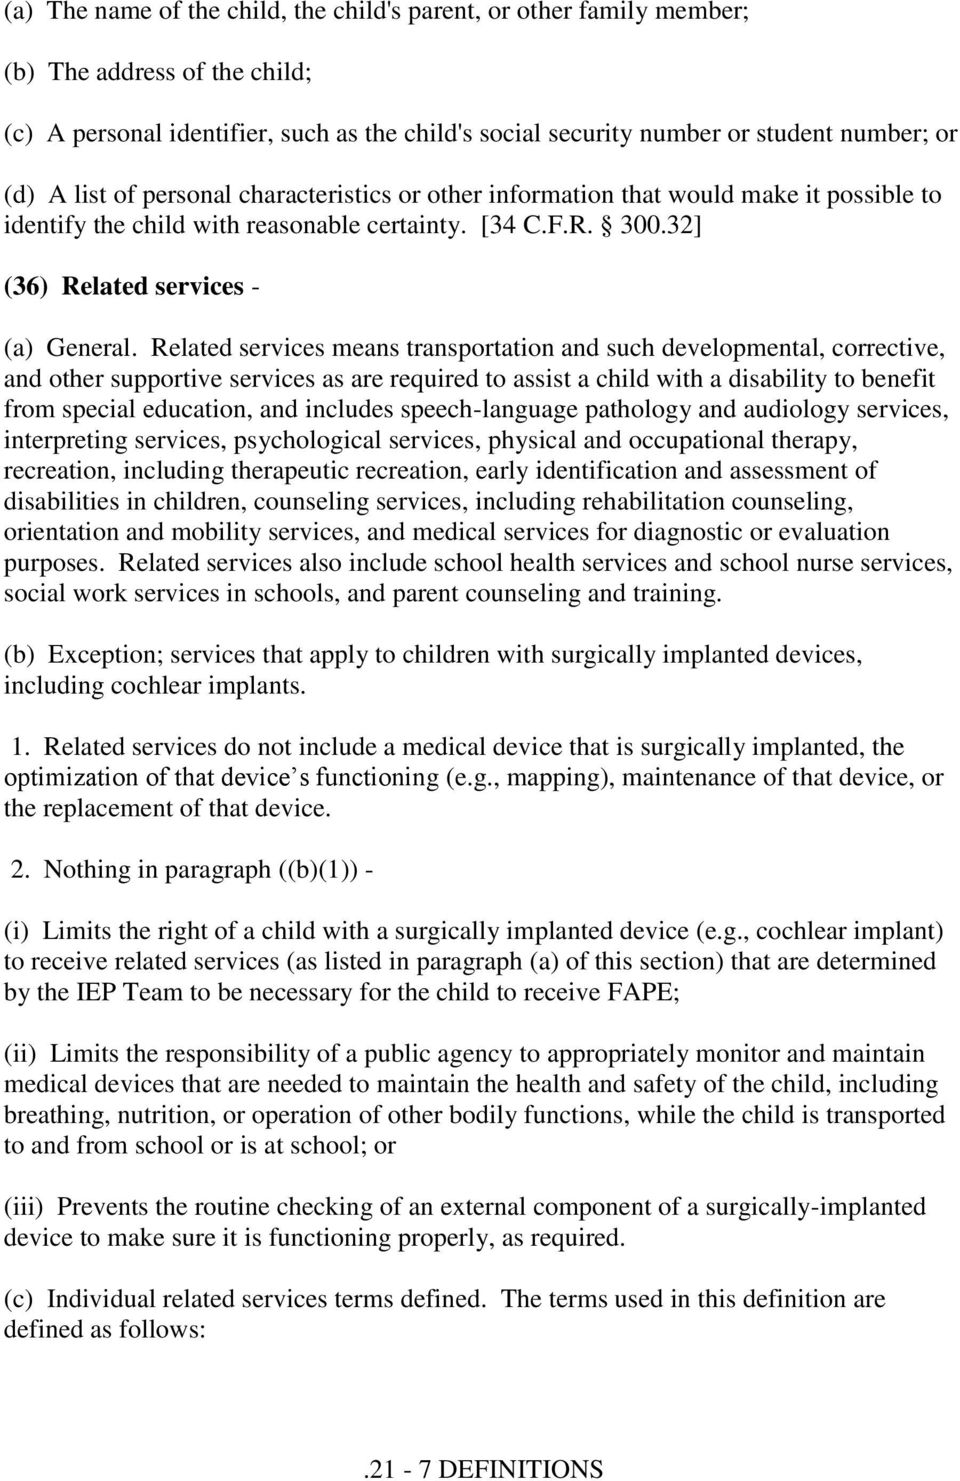 Related services means transportation and such developmental, corrective, and other supportive services as are required to assist a child with a disability to benefit from special education, and